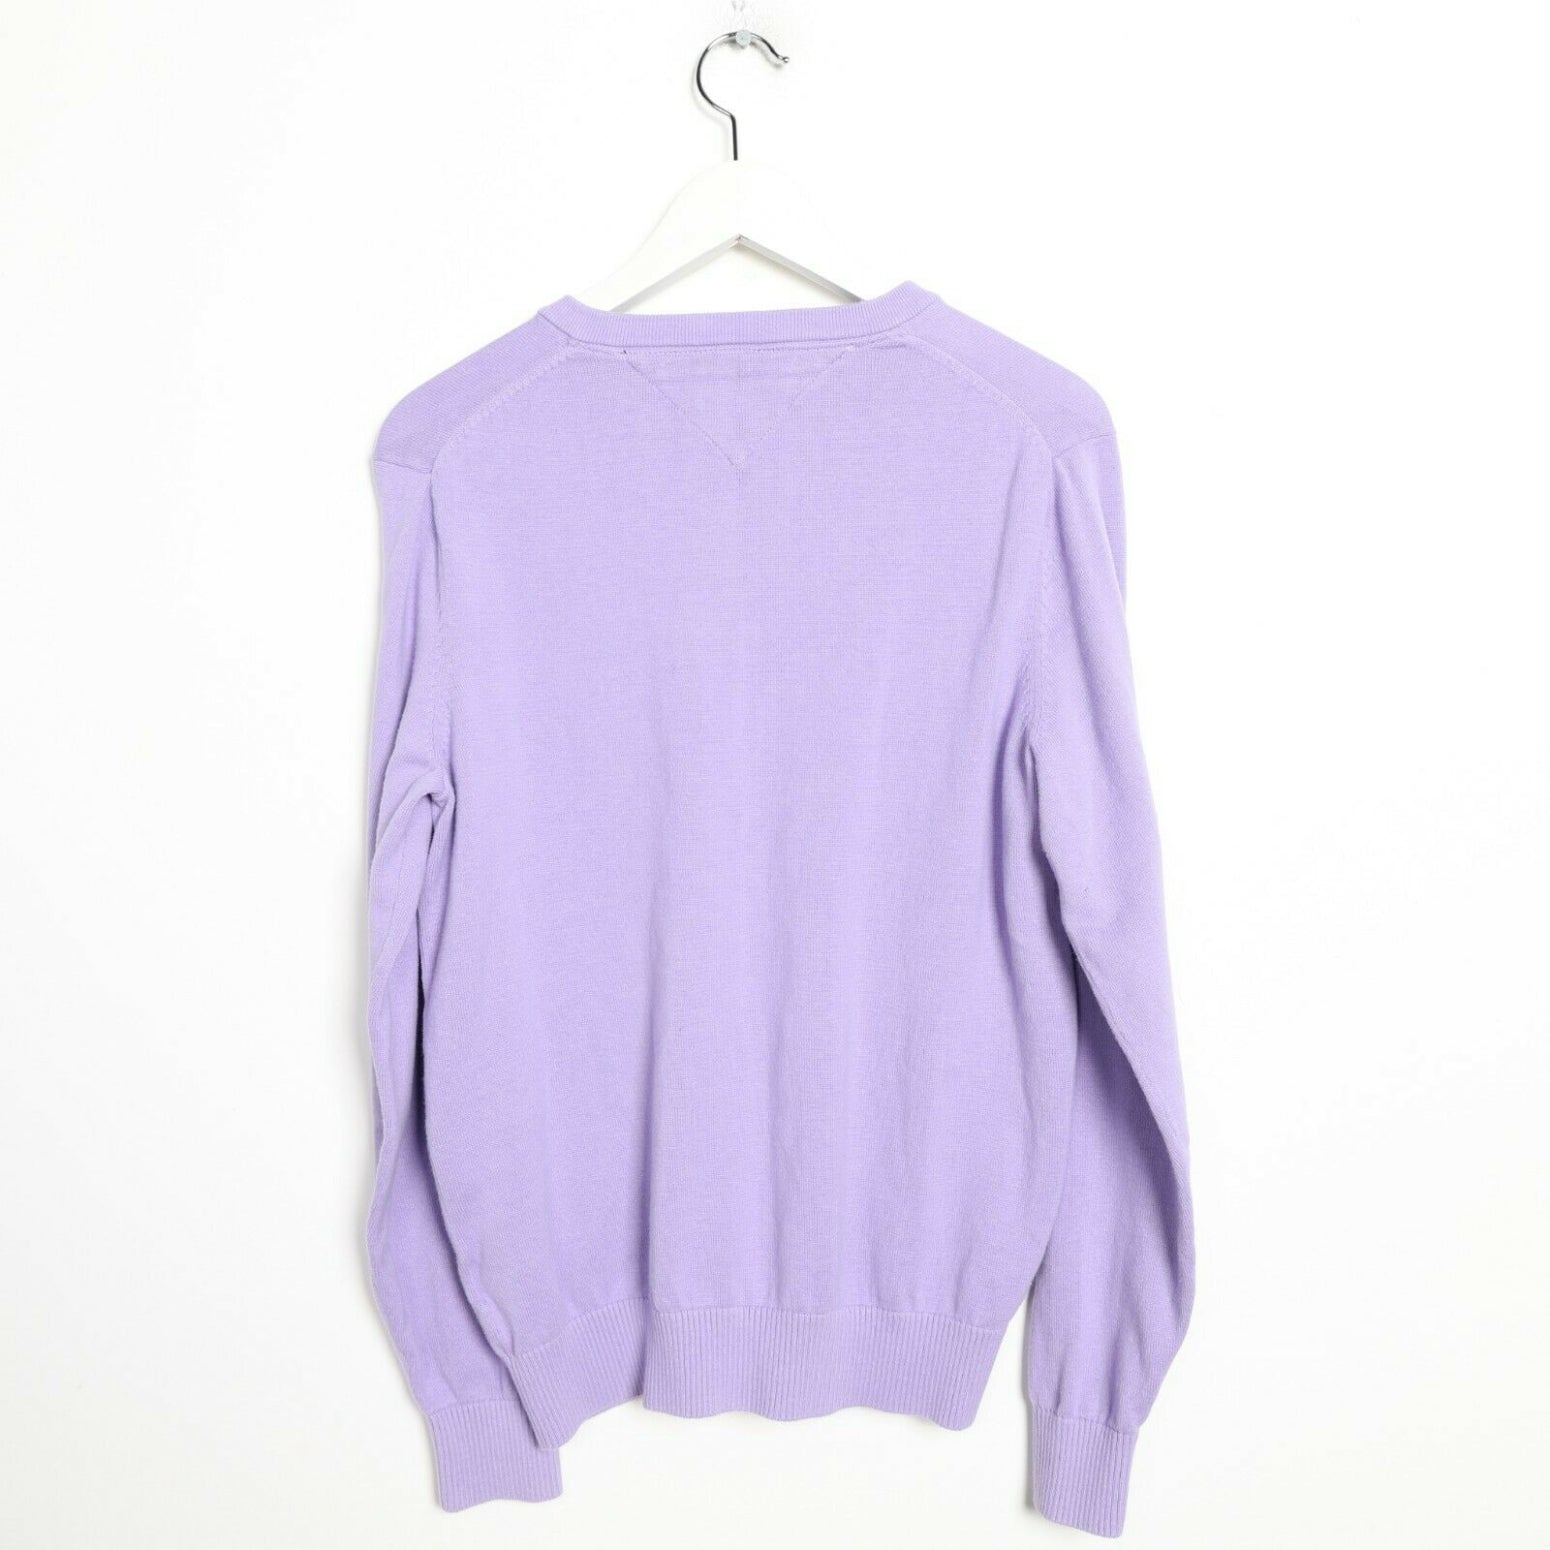 Vintage TOMMY HILFIGER Lightweight Sweatshirt Jumper Purple Small S